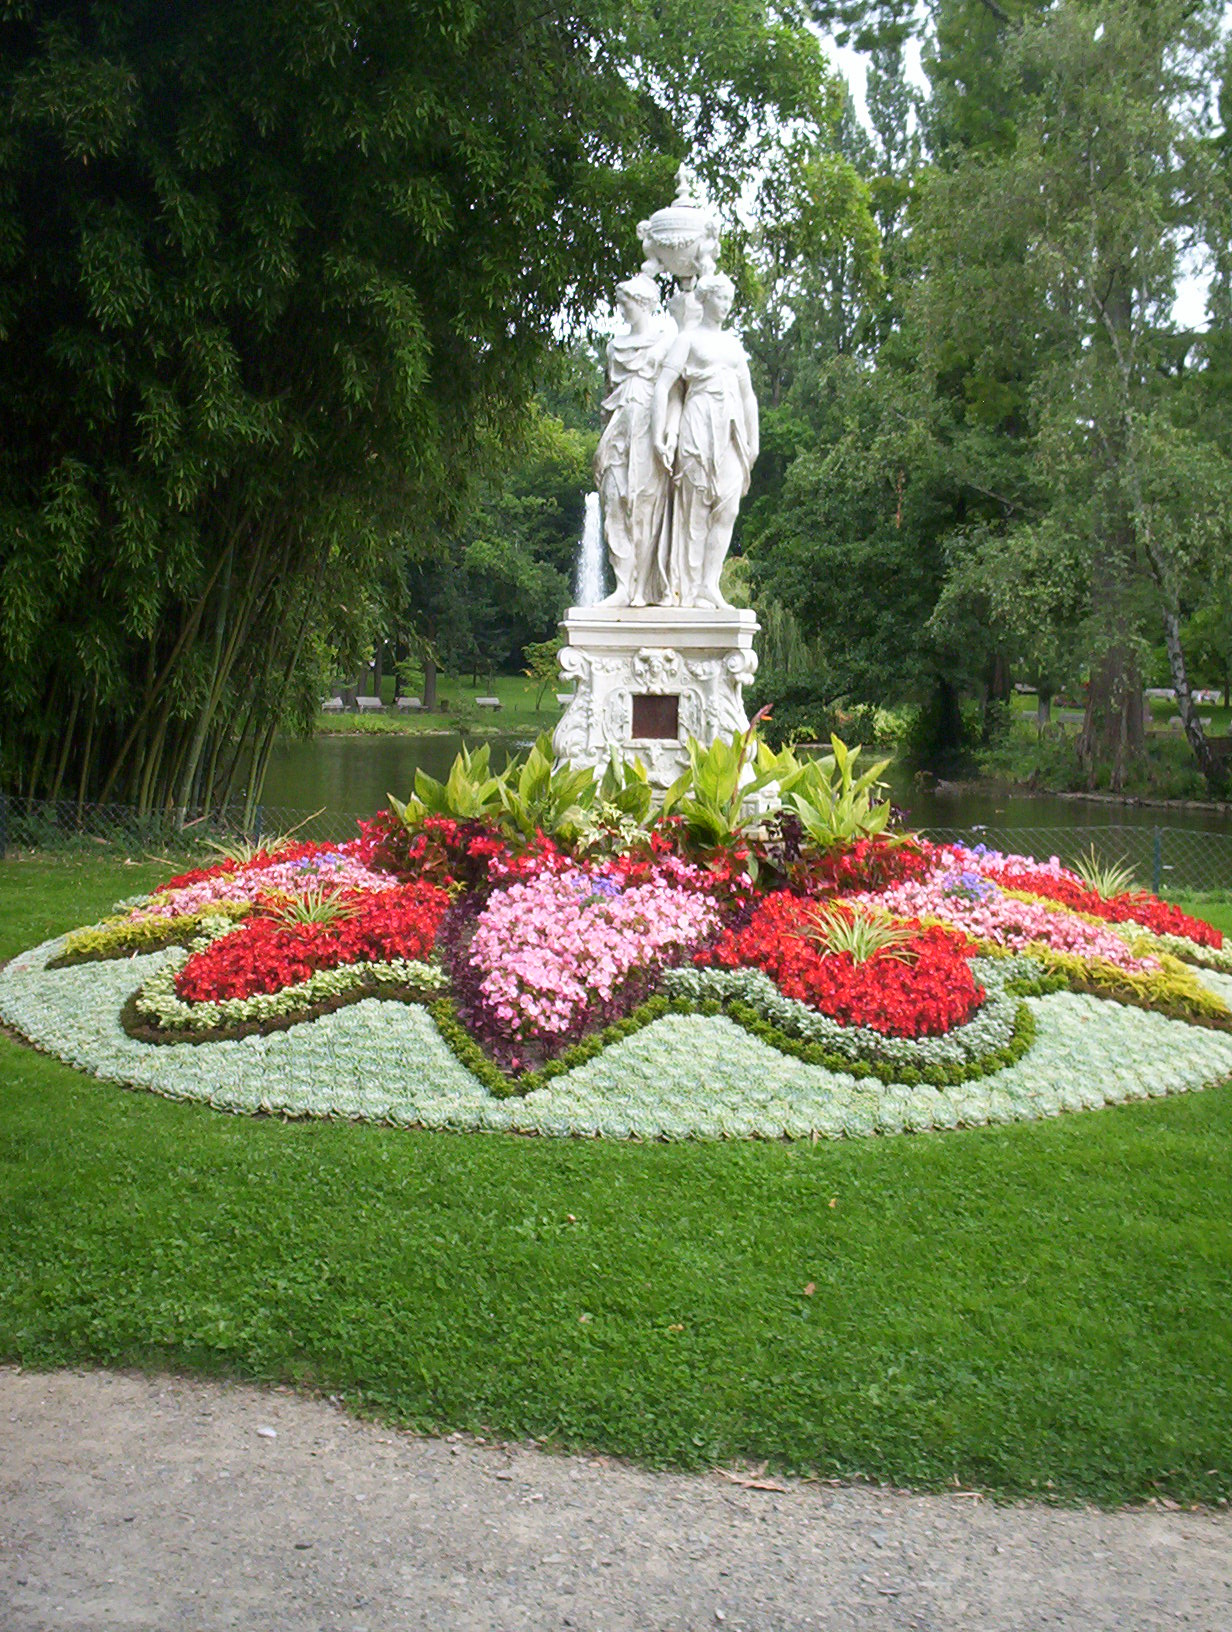 fichier vue statue jardin des plantes le mans jpg wikip dia. Black Bedroom Furniture Sets. Home Design Ideas